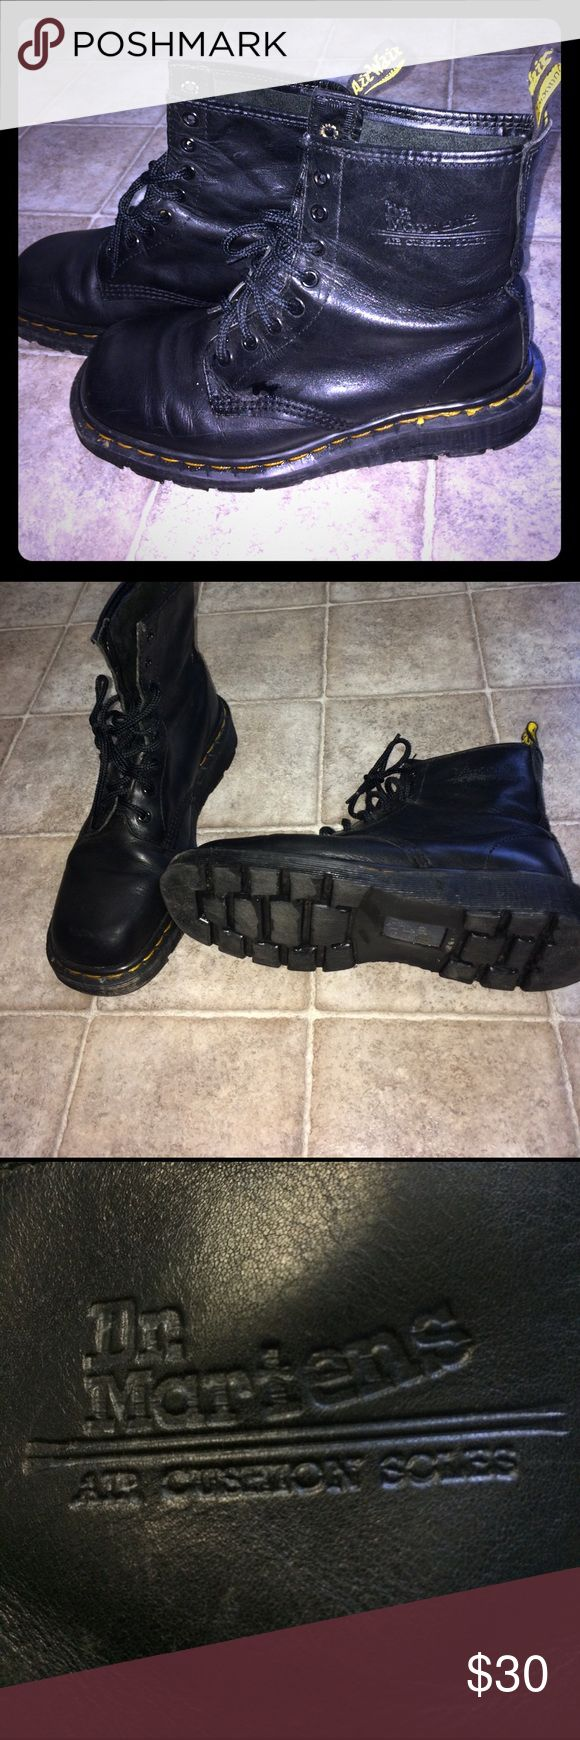 Dr. Martens black boots Good used condition. Made in England. Leather upper air cushioned hand made soles. Dr Martens Shoes